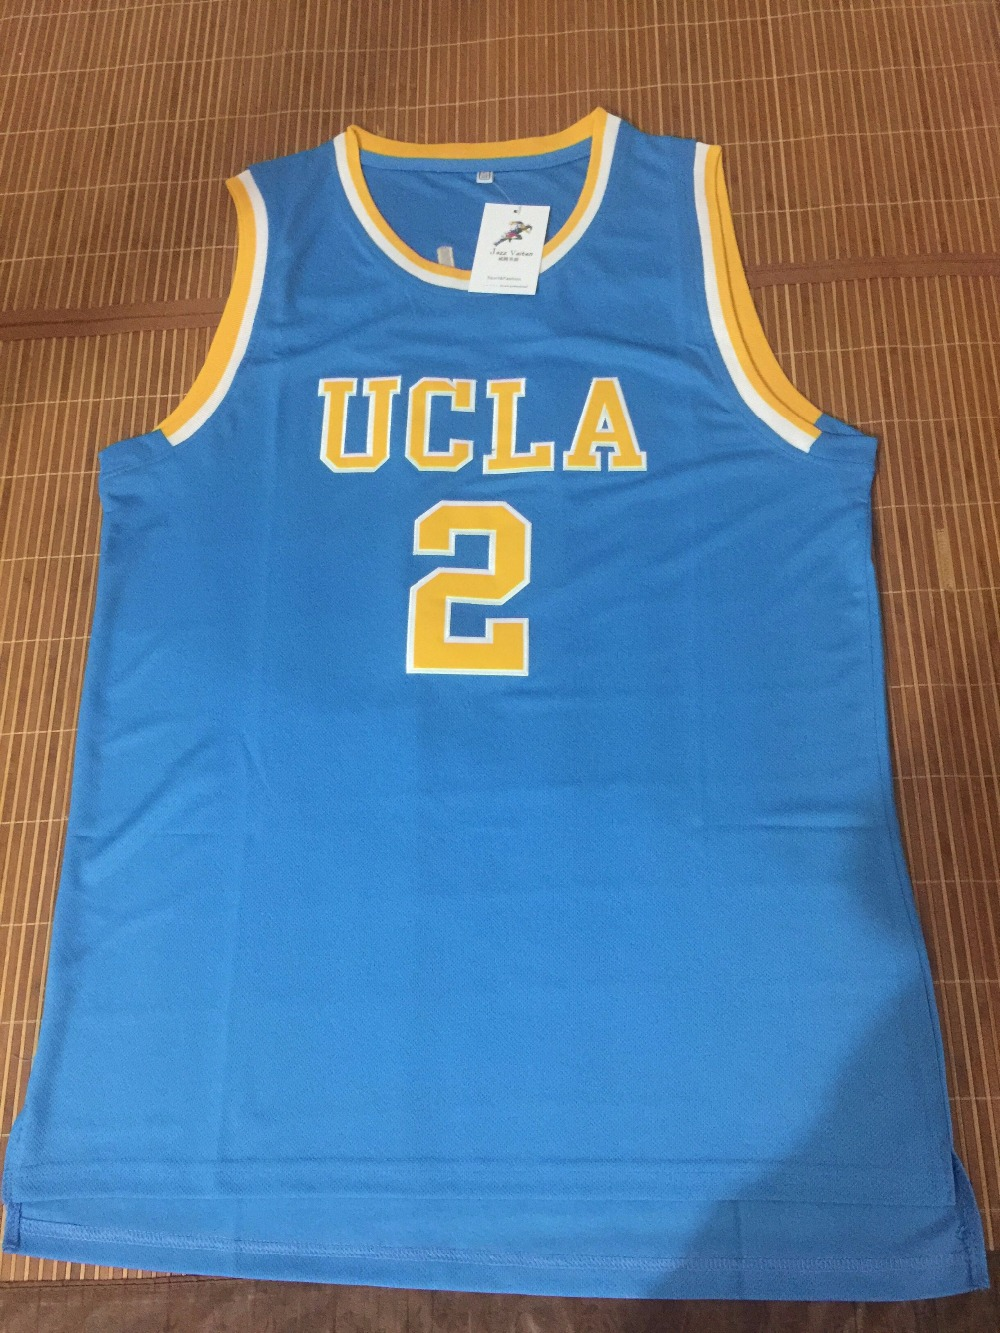 Jazz Vaiten Lonzo Ball 2 College Basketball Jerseys White Blue Colors  Throwback Men s new color new design 4a5221652